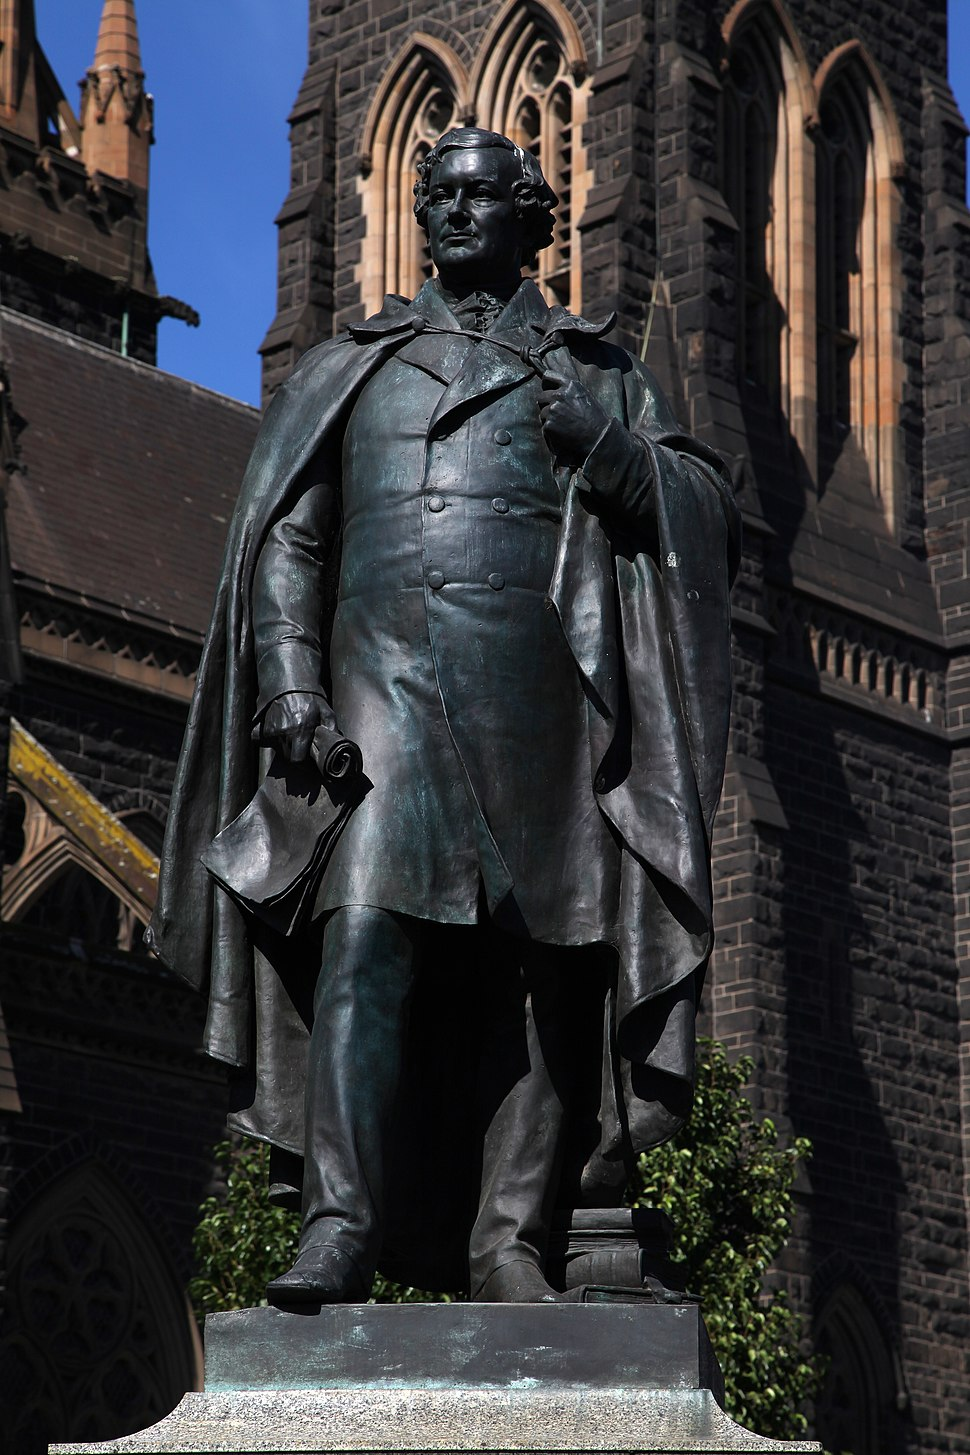 St Patricks Cathedral (Daniel O'Connell Statue)